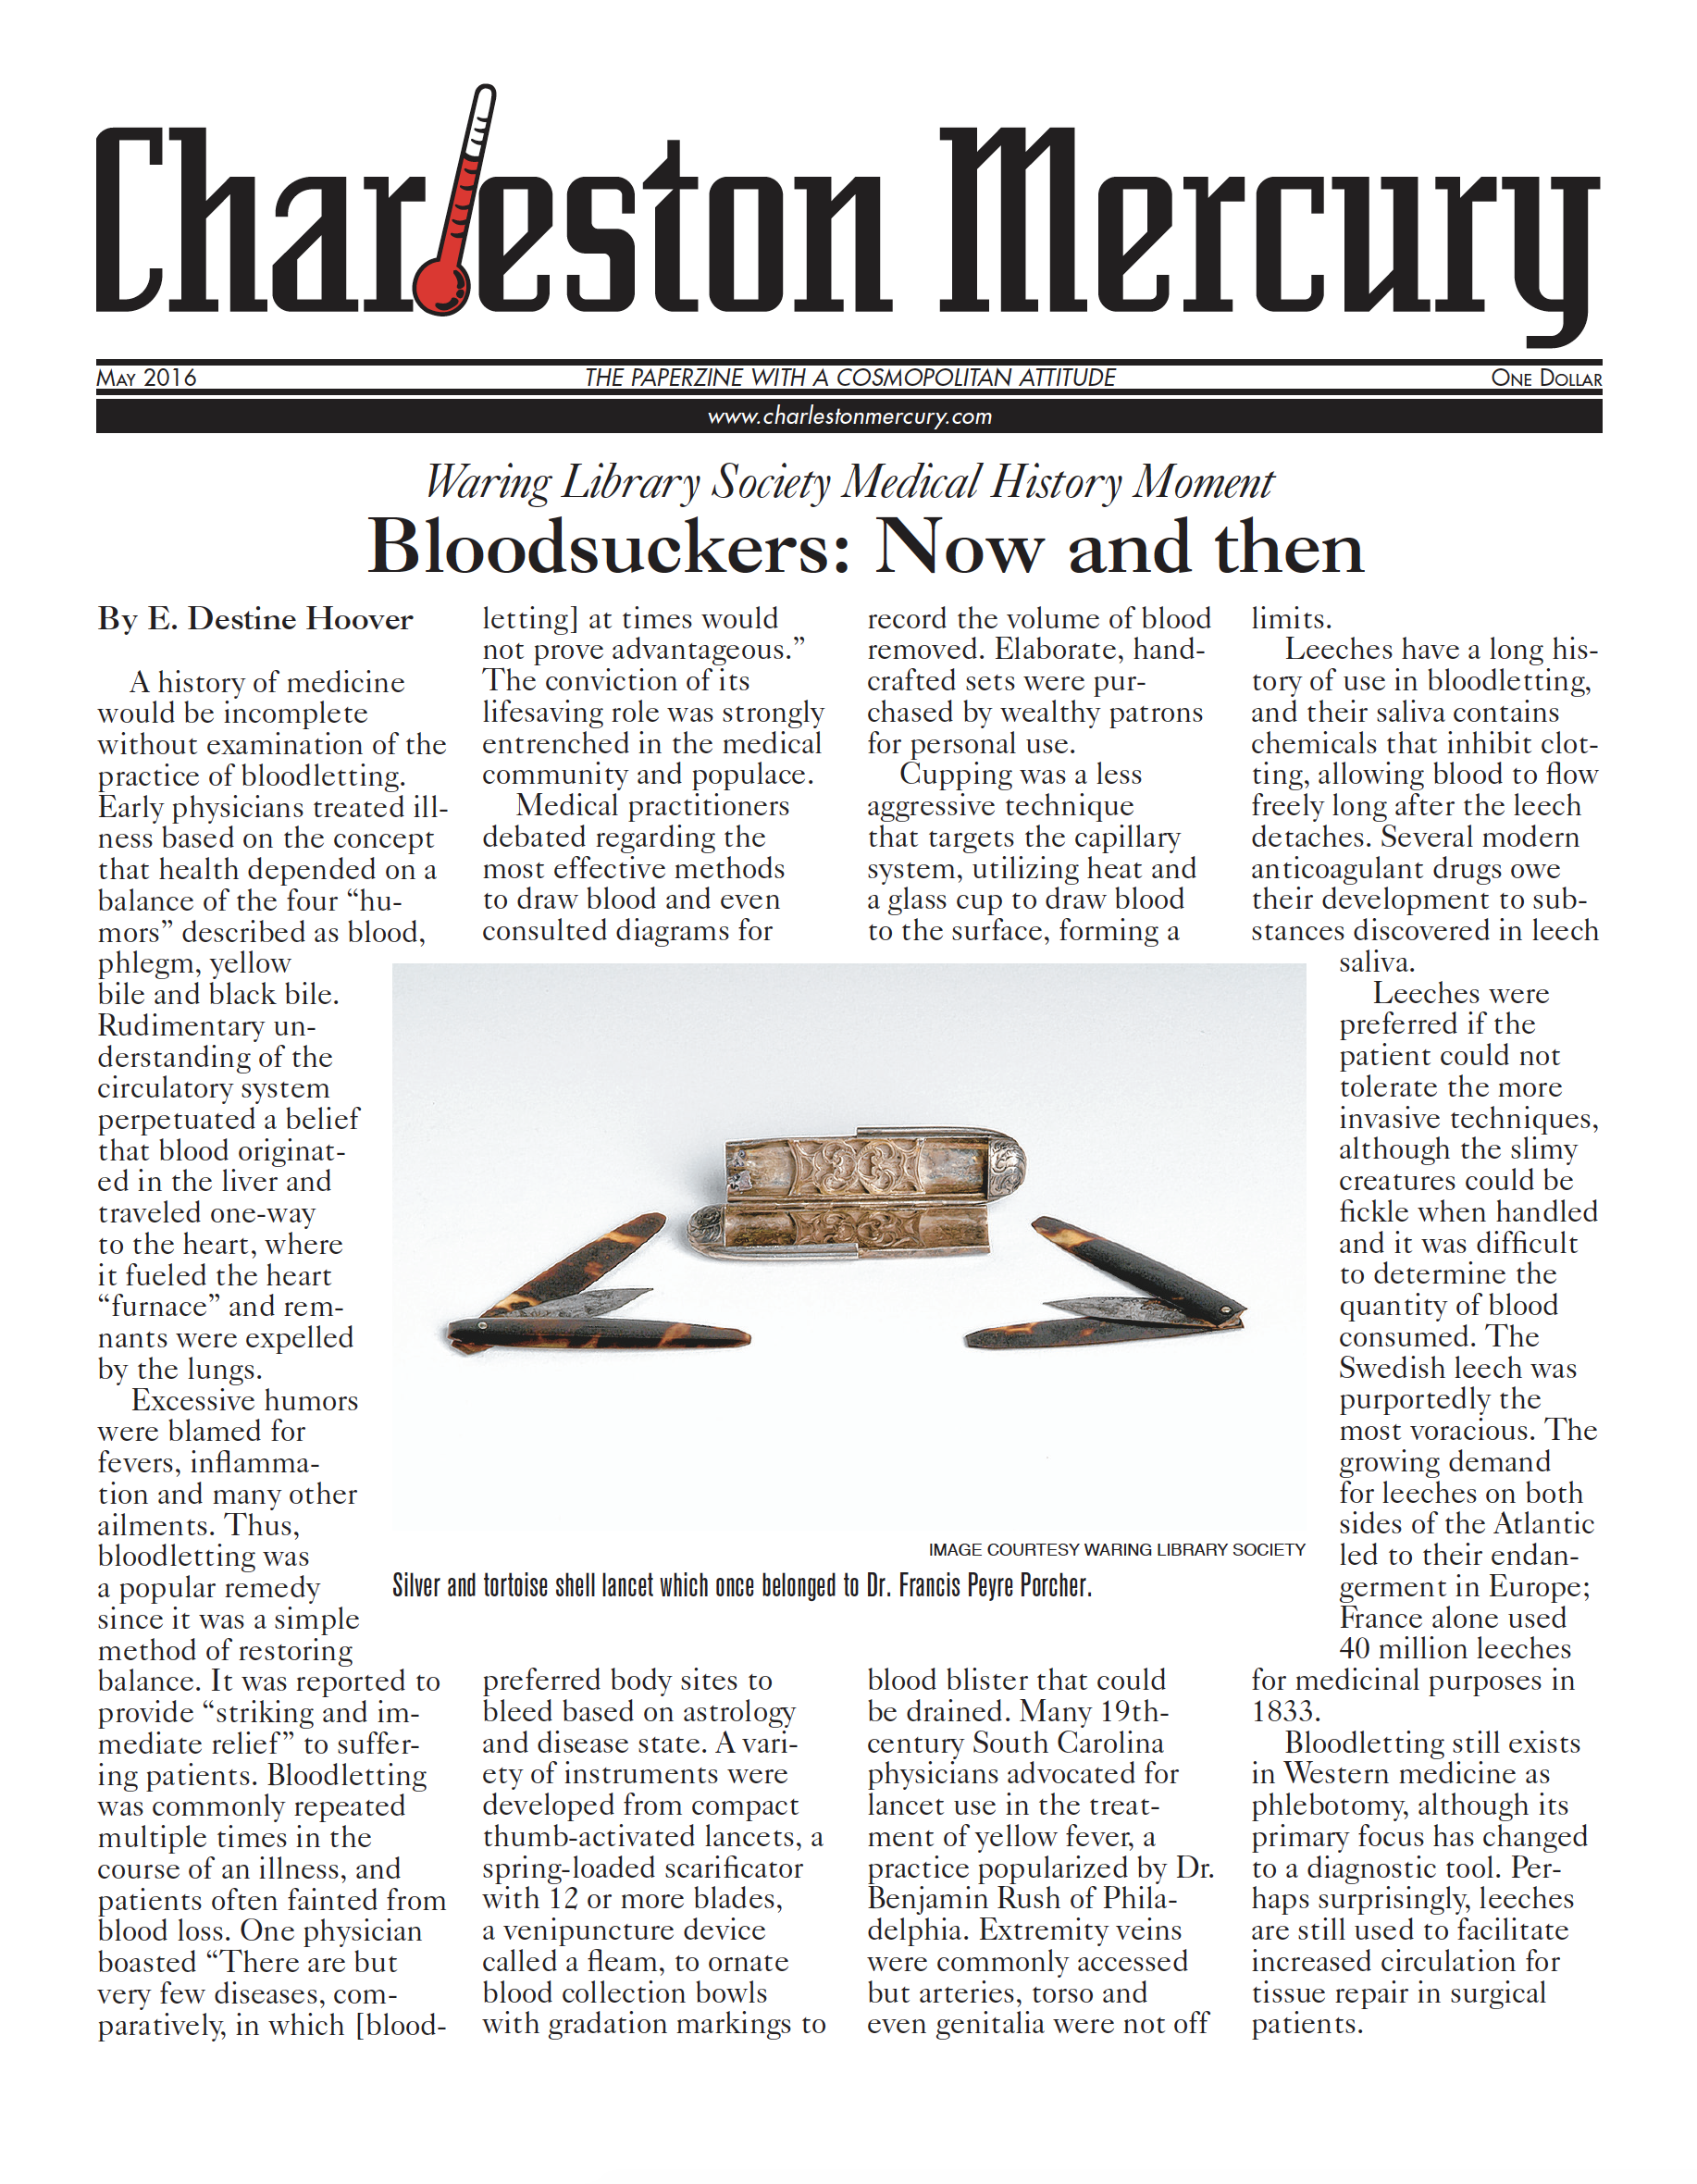 Charleston Mercury, May 2016